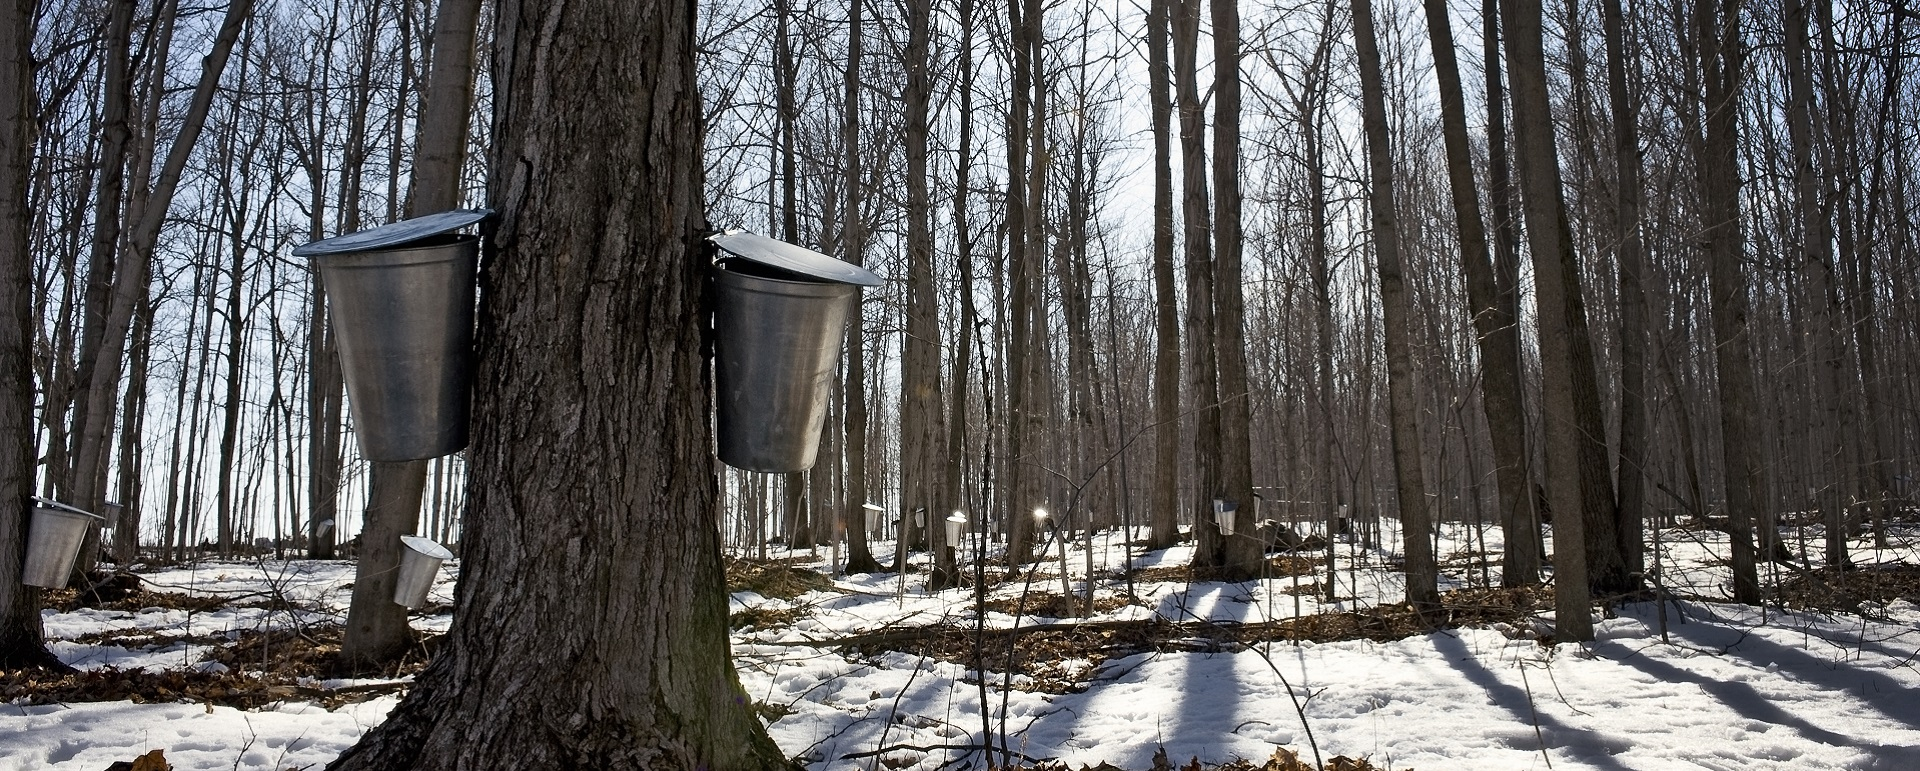 tree with maple syrup buckets